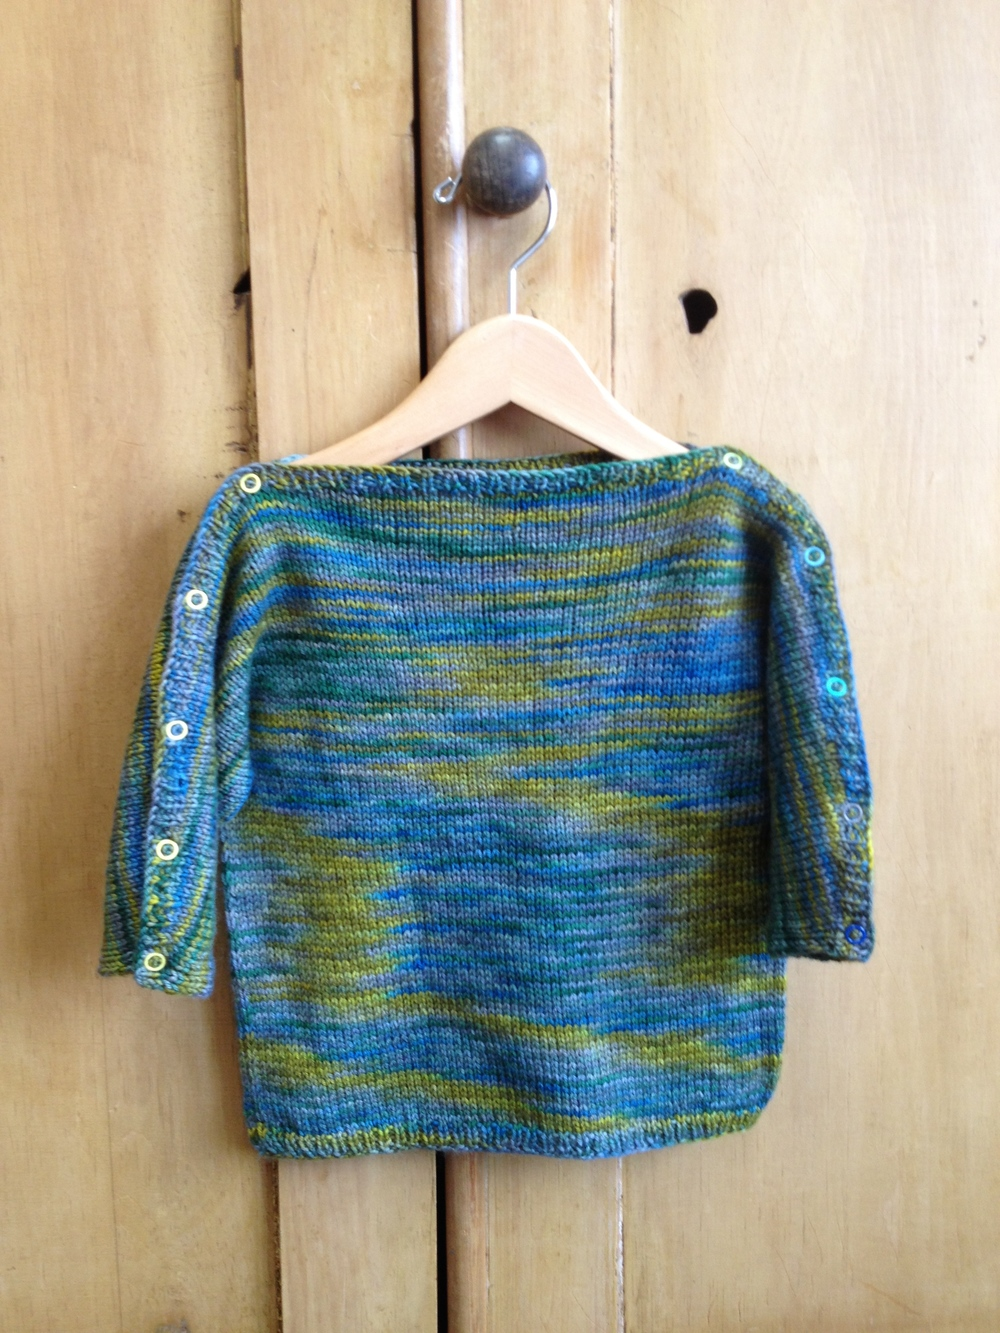 CHIPPY sweater in SCRUMPTIOUS the new OGRE SWAMP colorway ... and the snaps on the sleeves make it perfect!